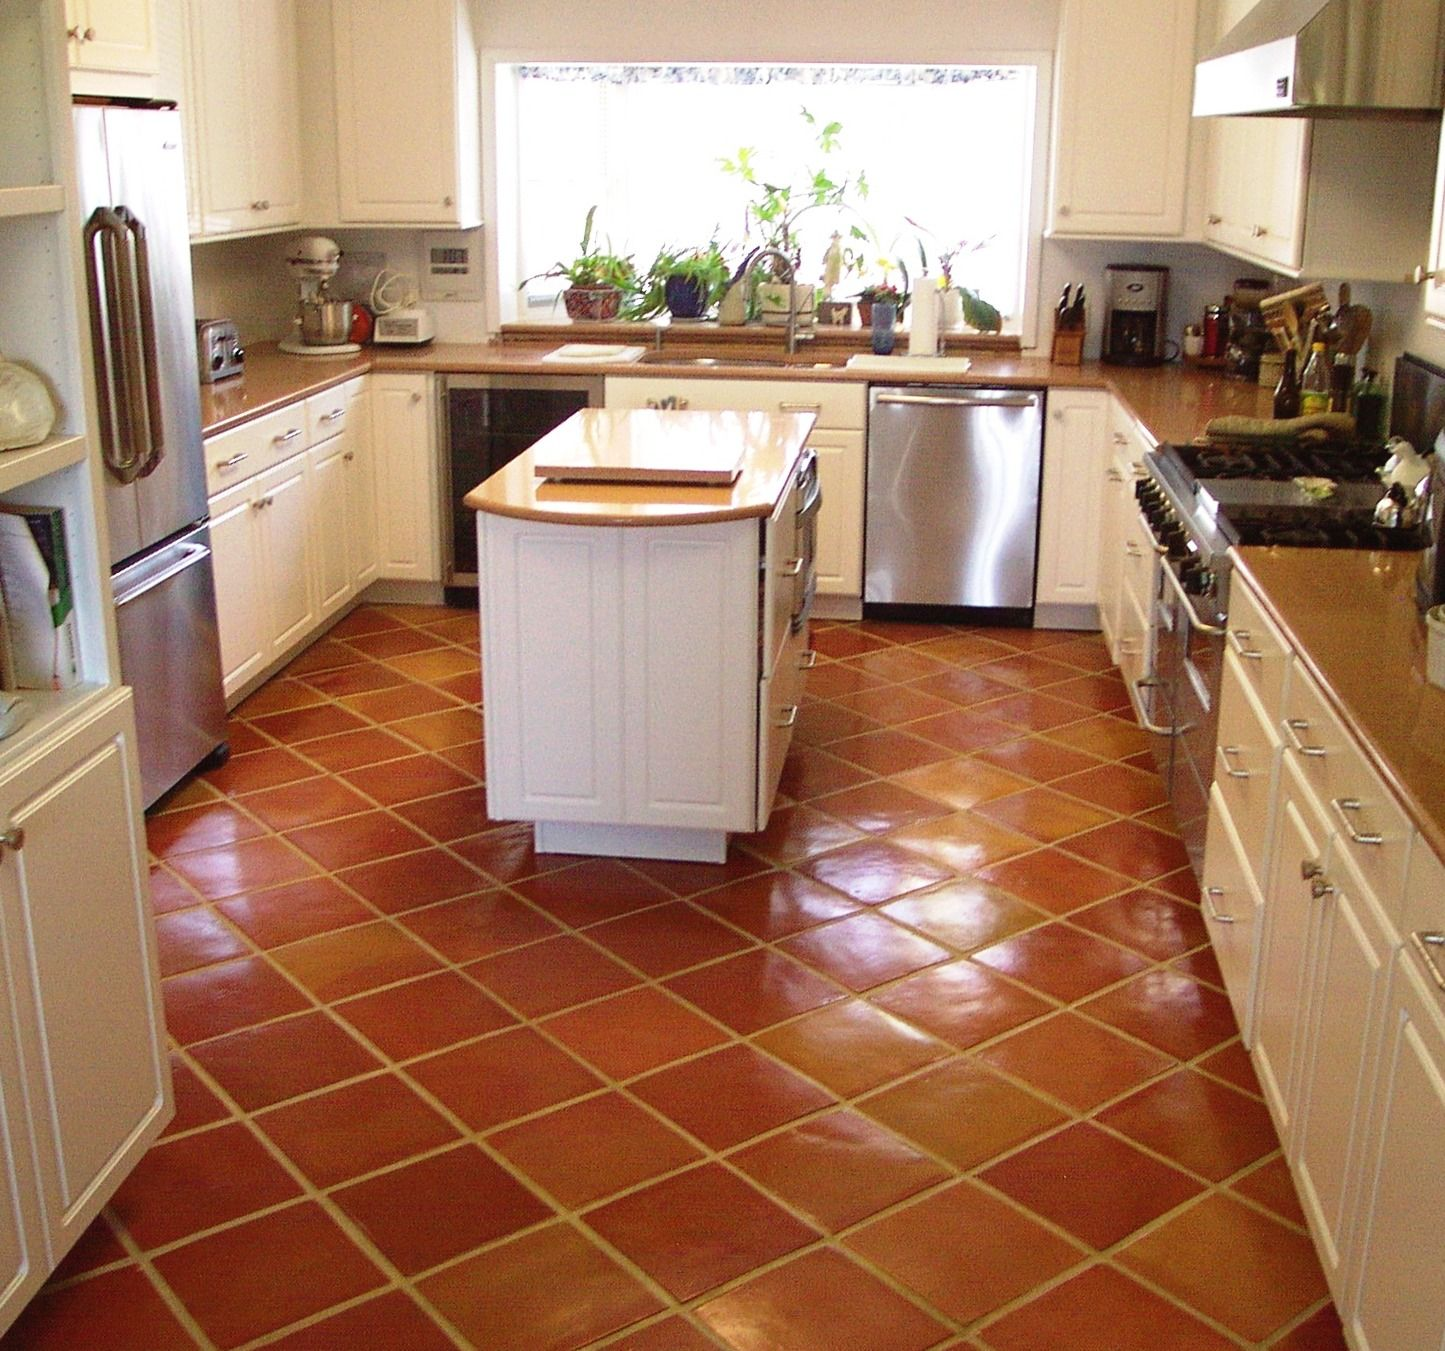 Floor Tile Kitchen Traditional Saltillo Terra Cotta Floor Tile In A Beautiful White